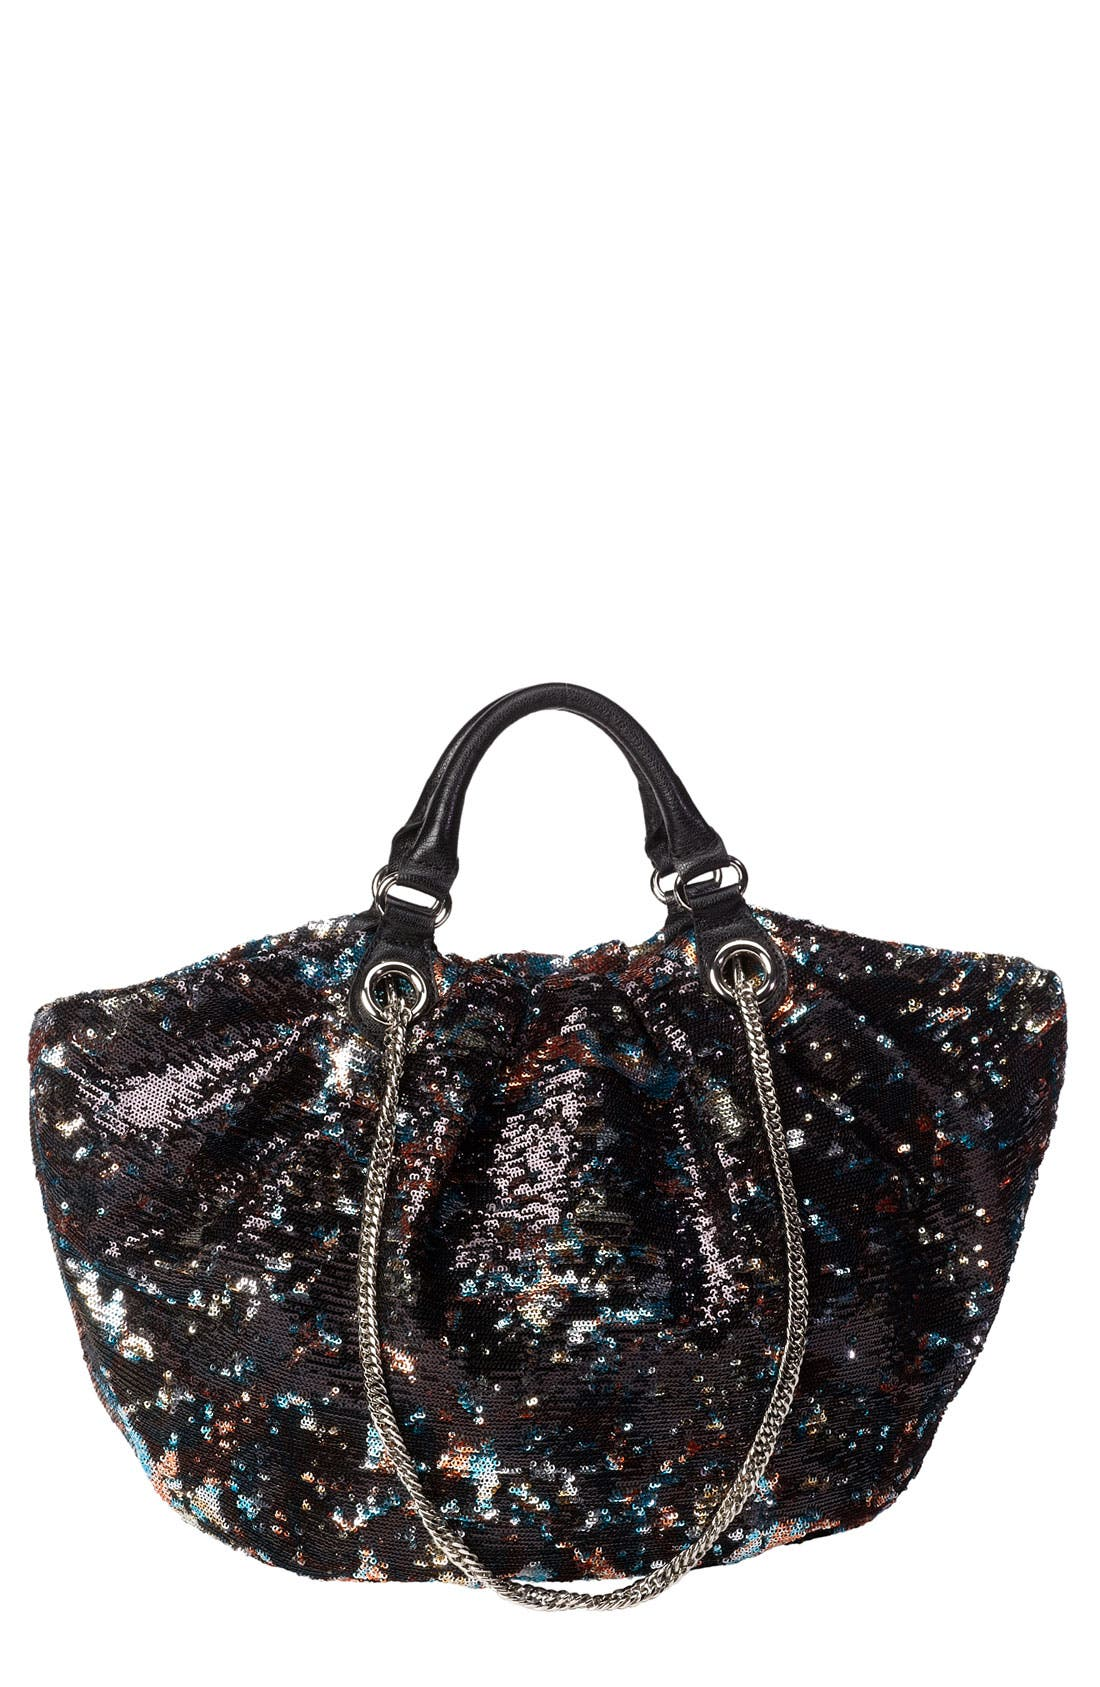 Main Image - Oryany 'Wendy - Large' Reversible Sequin Tote